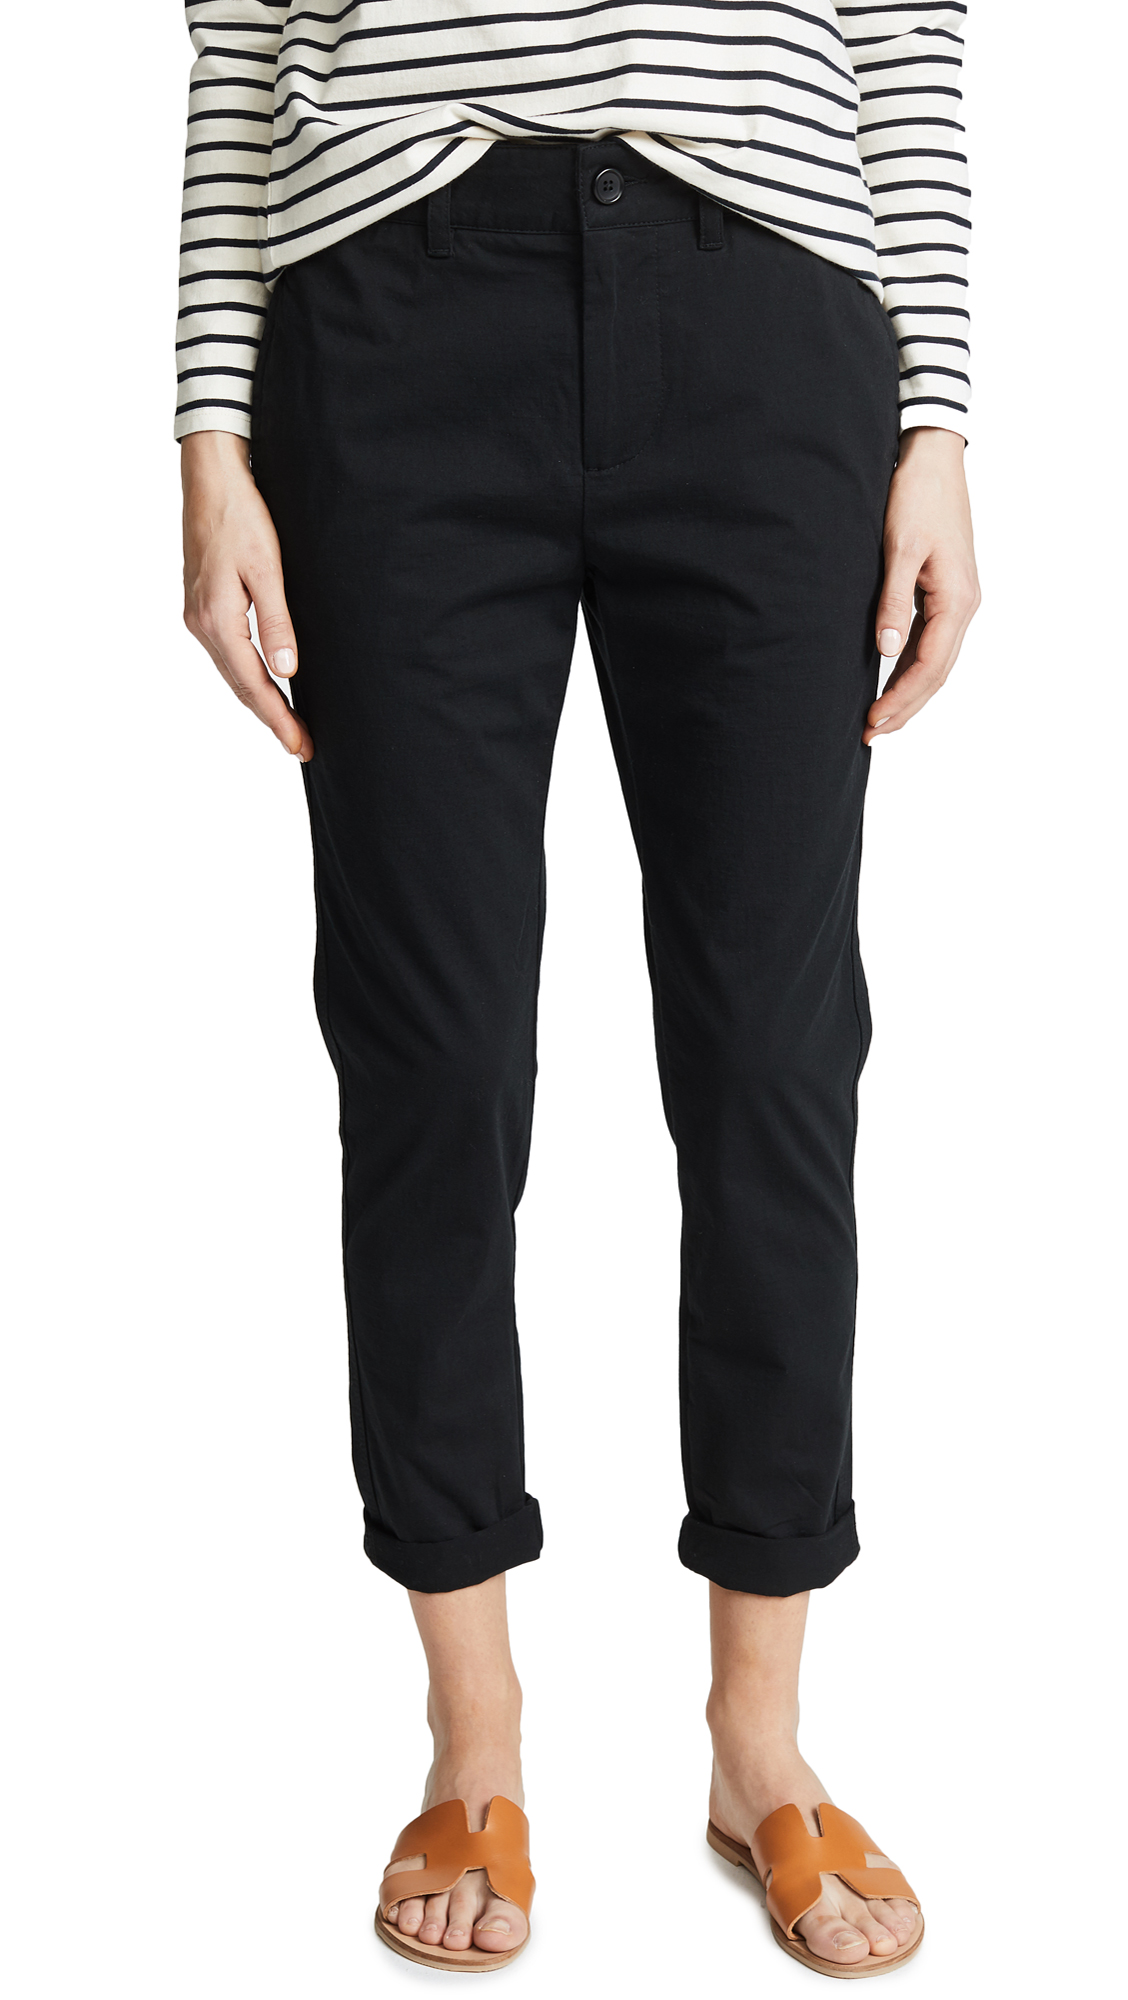 James Perse Full Surplus Pants